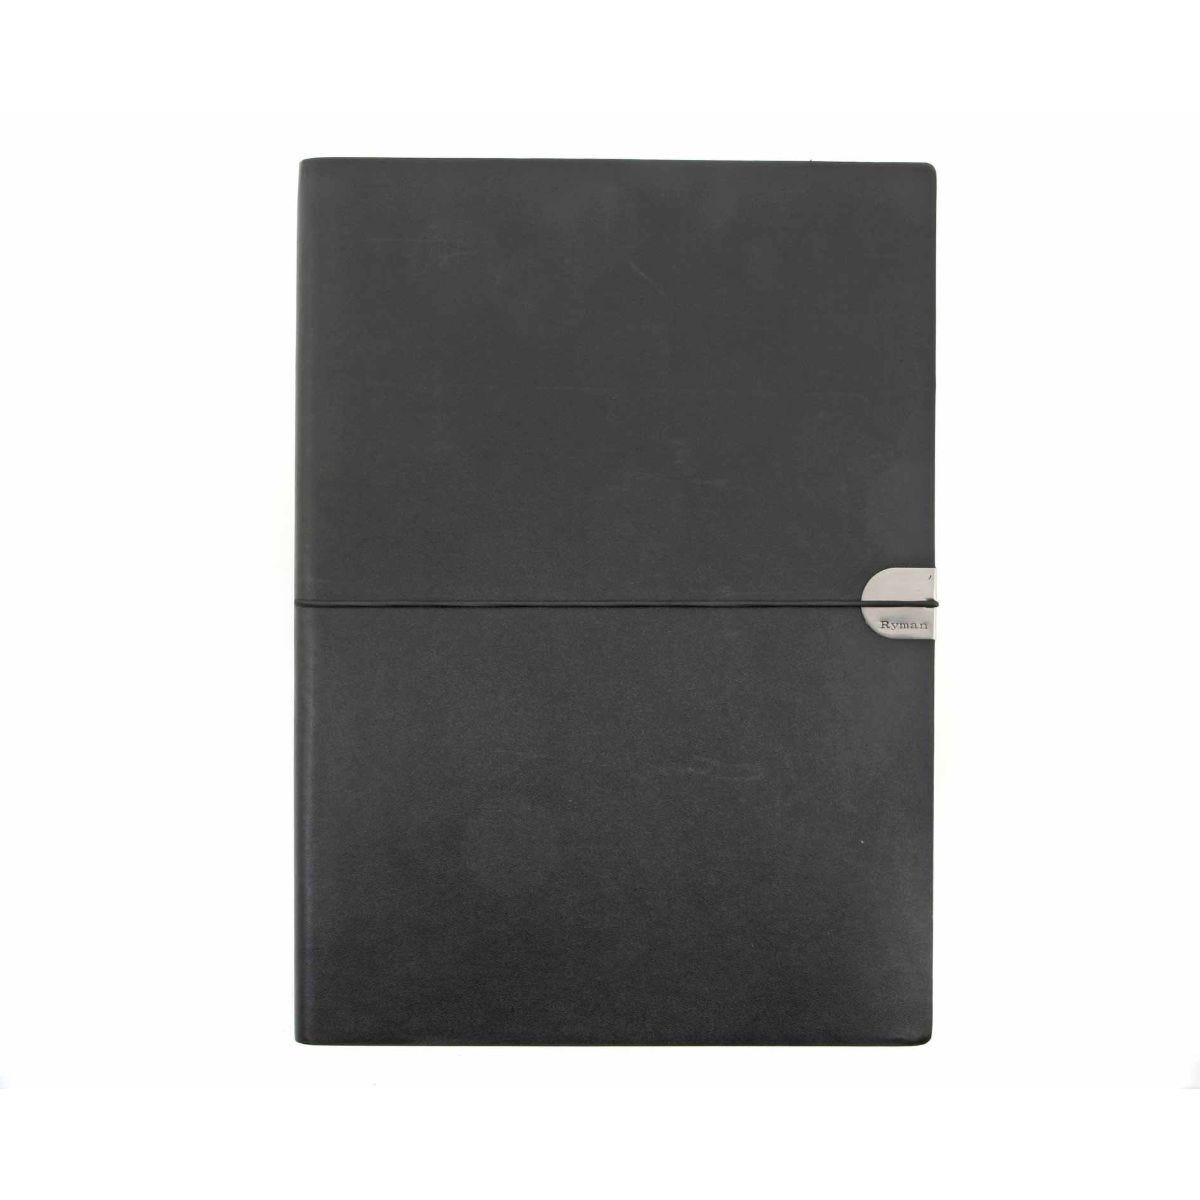 Ryman Soft Cover Sketch Book A4 110gsm 80 Sheets 160 Pages